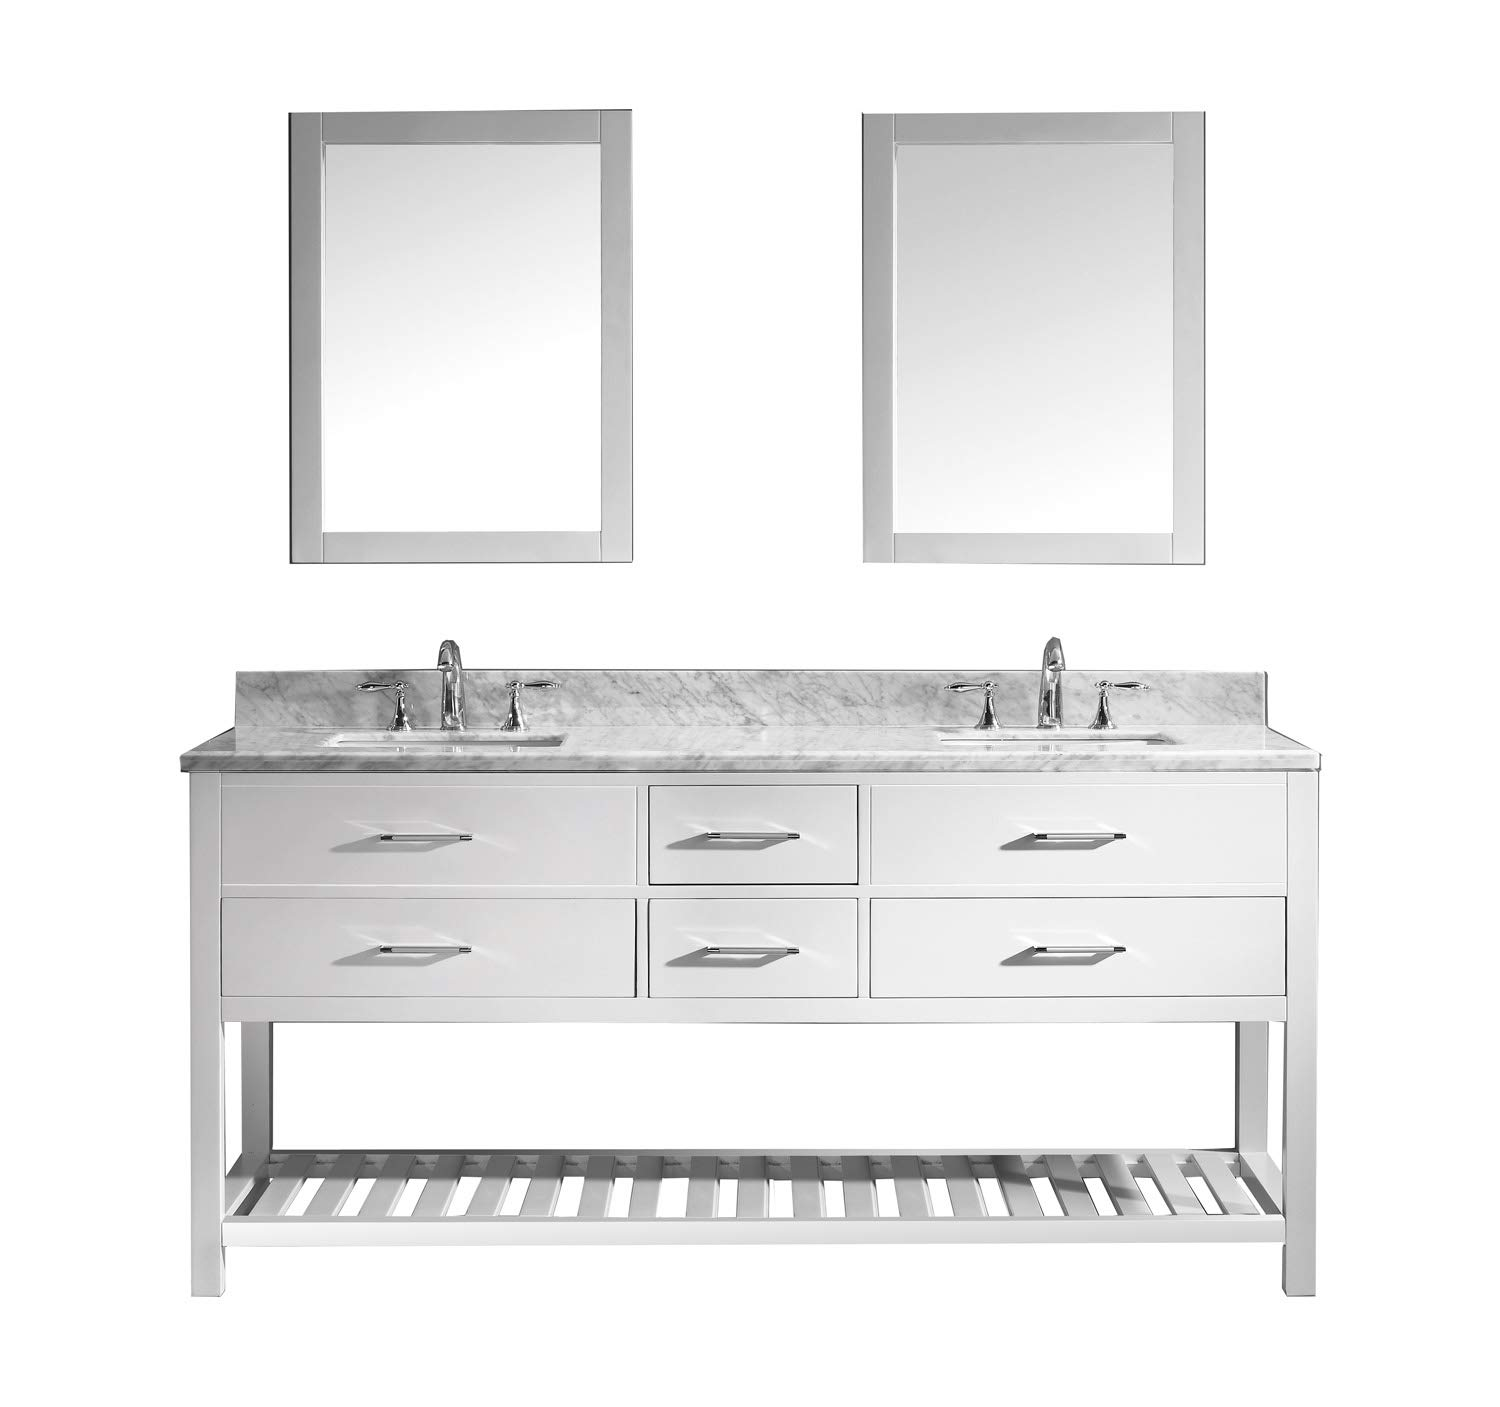 Virtu USA Caroline Estate 72 inch Double Sink Bathroom Vanity Set in White w Square Undermount Sink, Italian Carrara White Marble Countertop, No Faucet, 2 Mirrors – MD-2272-WMSQ-WH